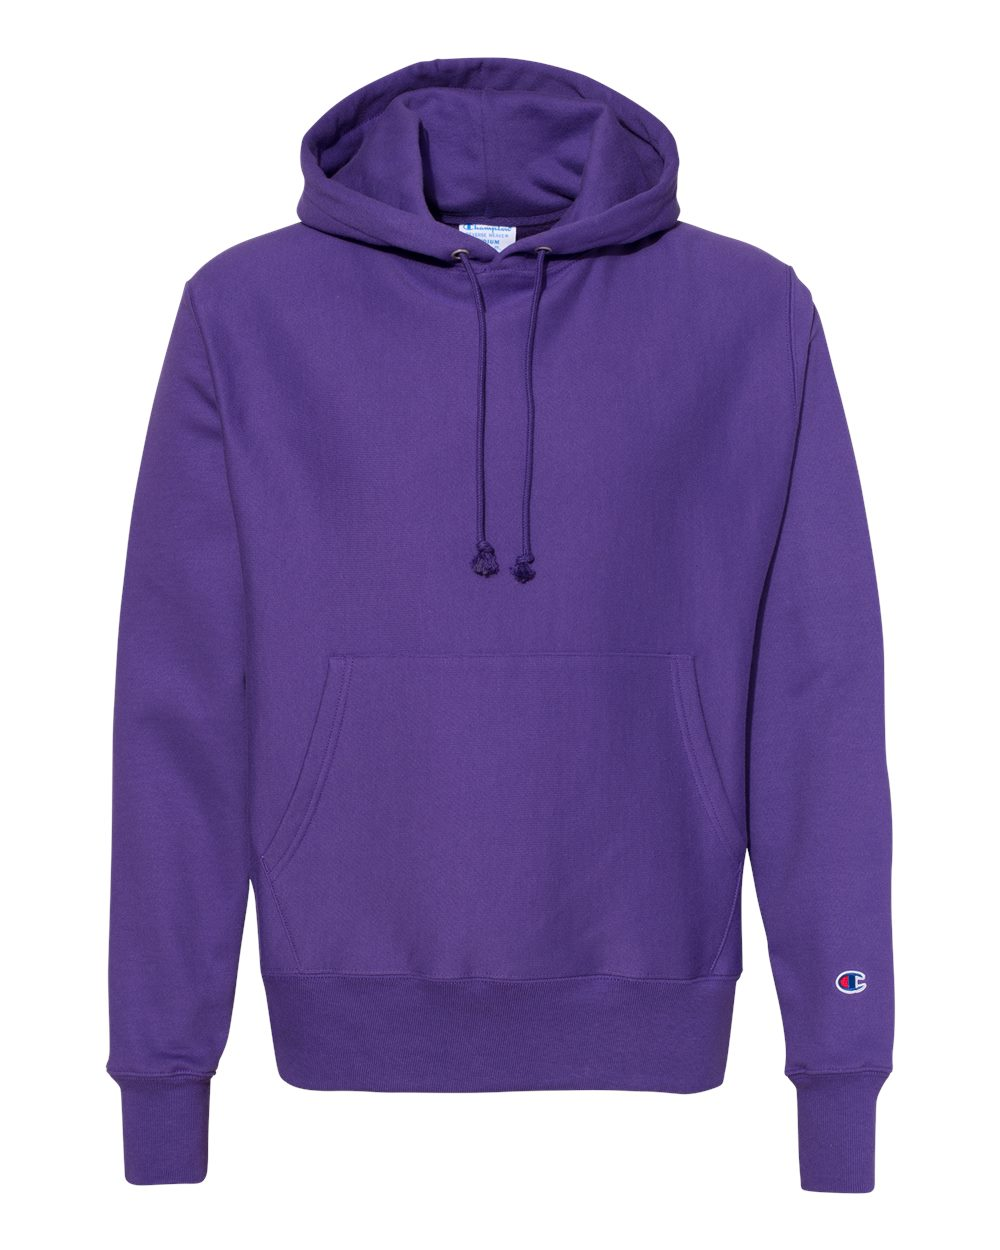 Champion-Mens-Reverse-Weave-Hooded-Pullover-Sweatshirt-S101-up-to-3XL thumbnail 39